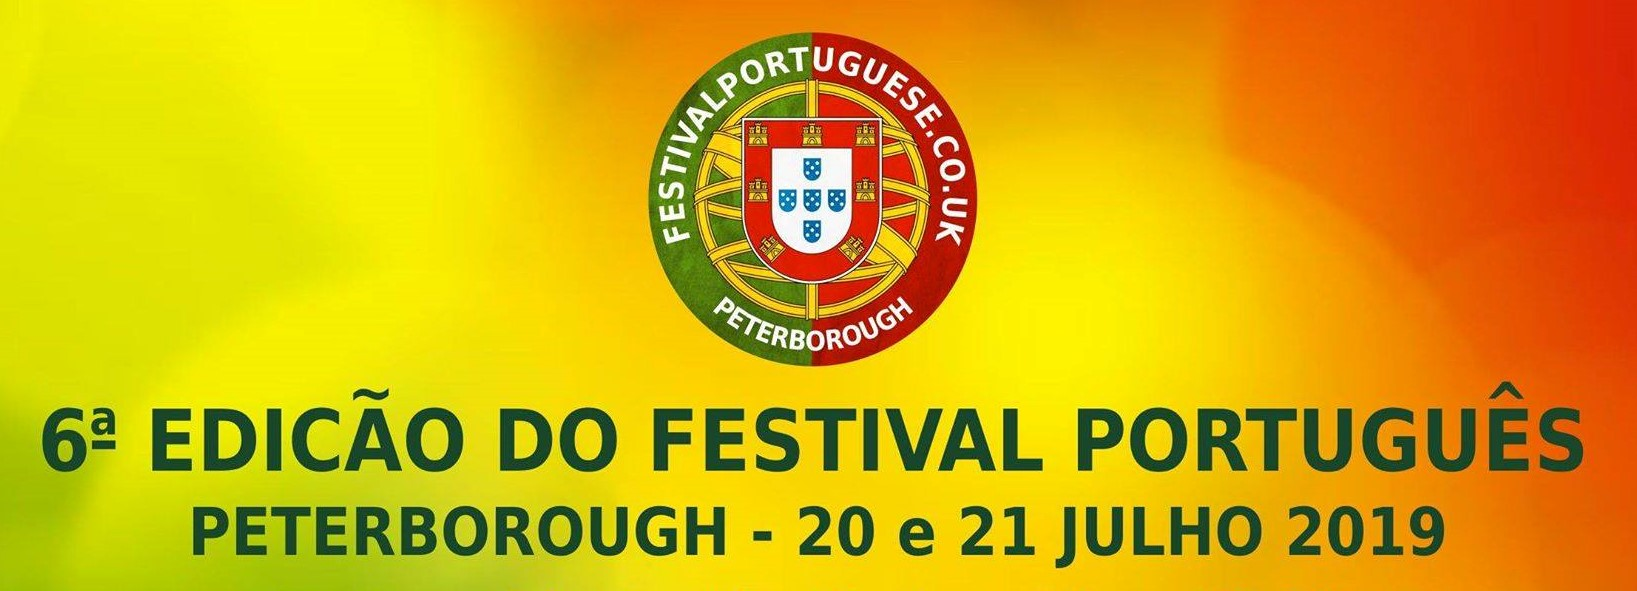 Festival Português Peterborough